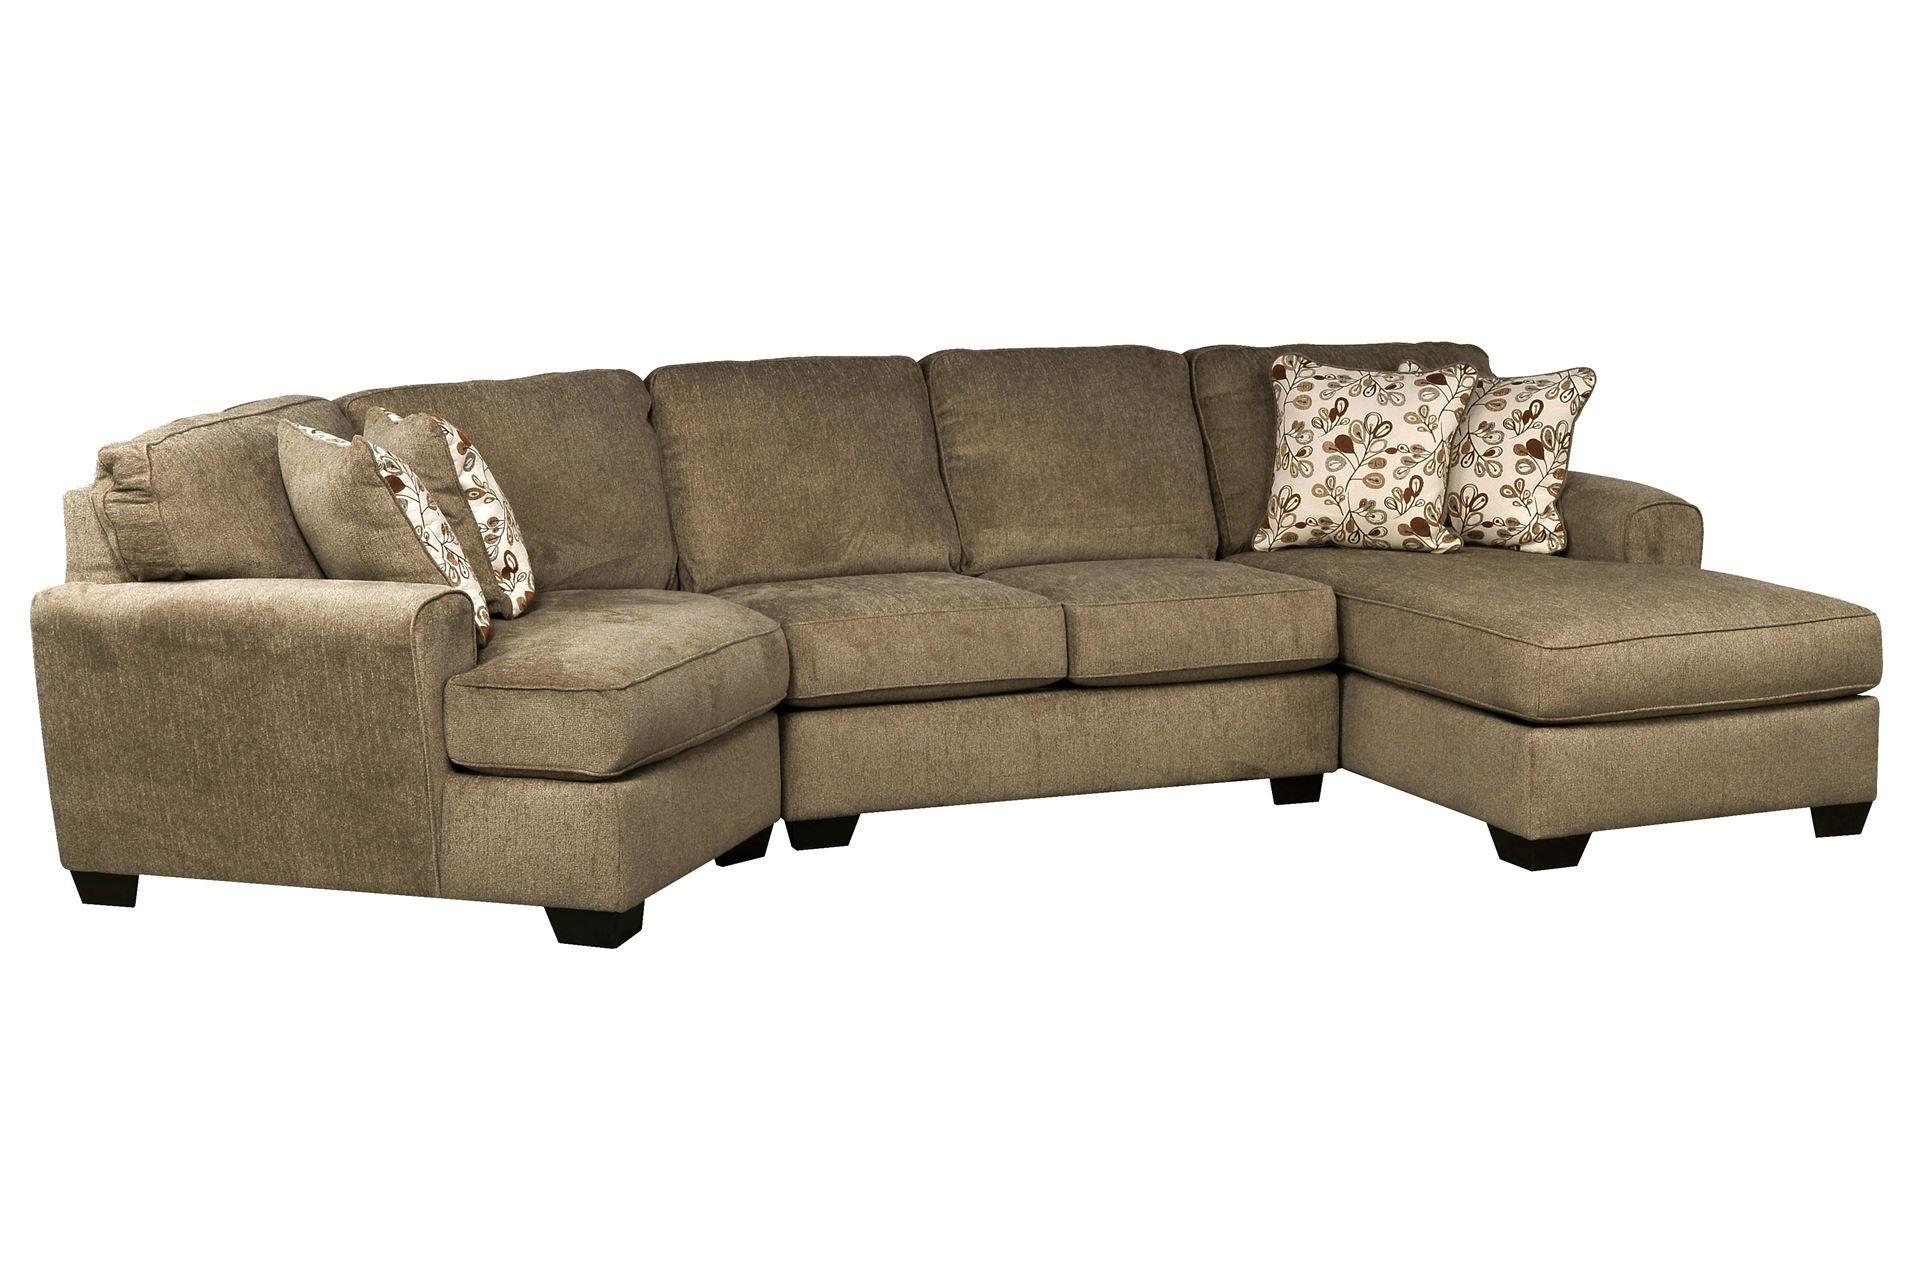 Don't Love The Color, But The Shape Is Great! | Patola Park 3 Piece Pertaining To Sectional Sofas With Cuddler Chaise (Image 2 of 10)